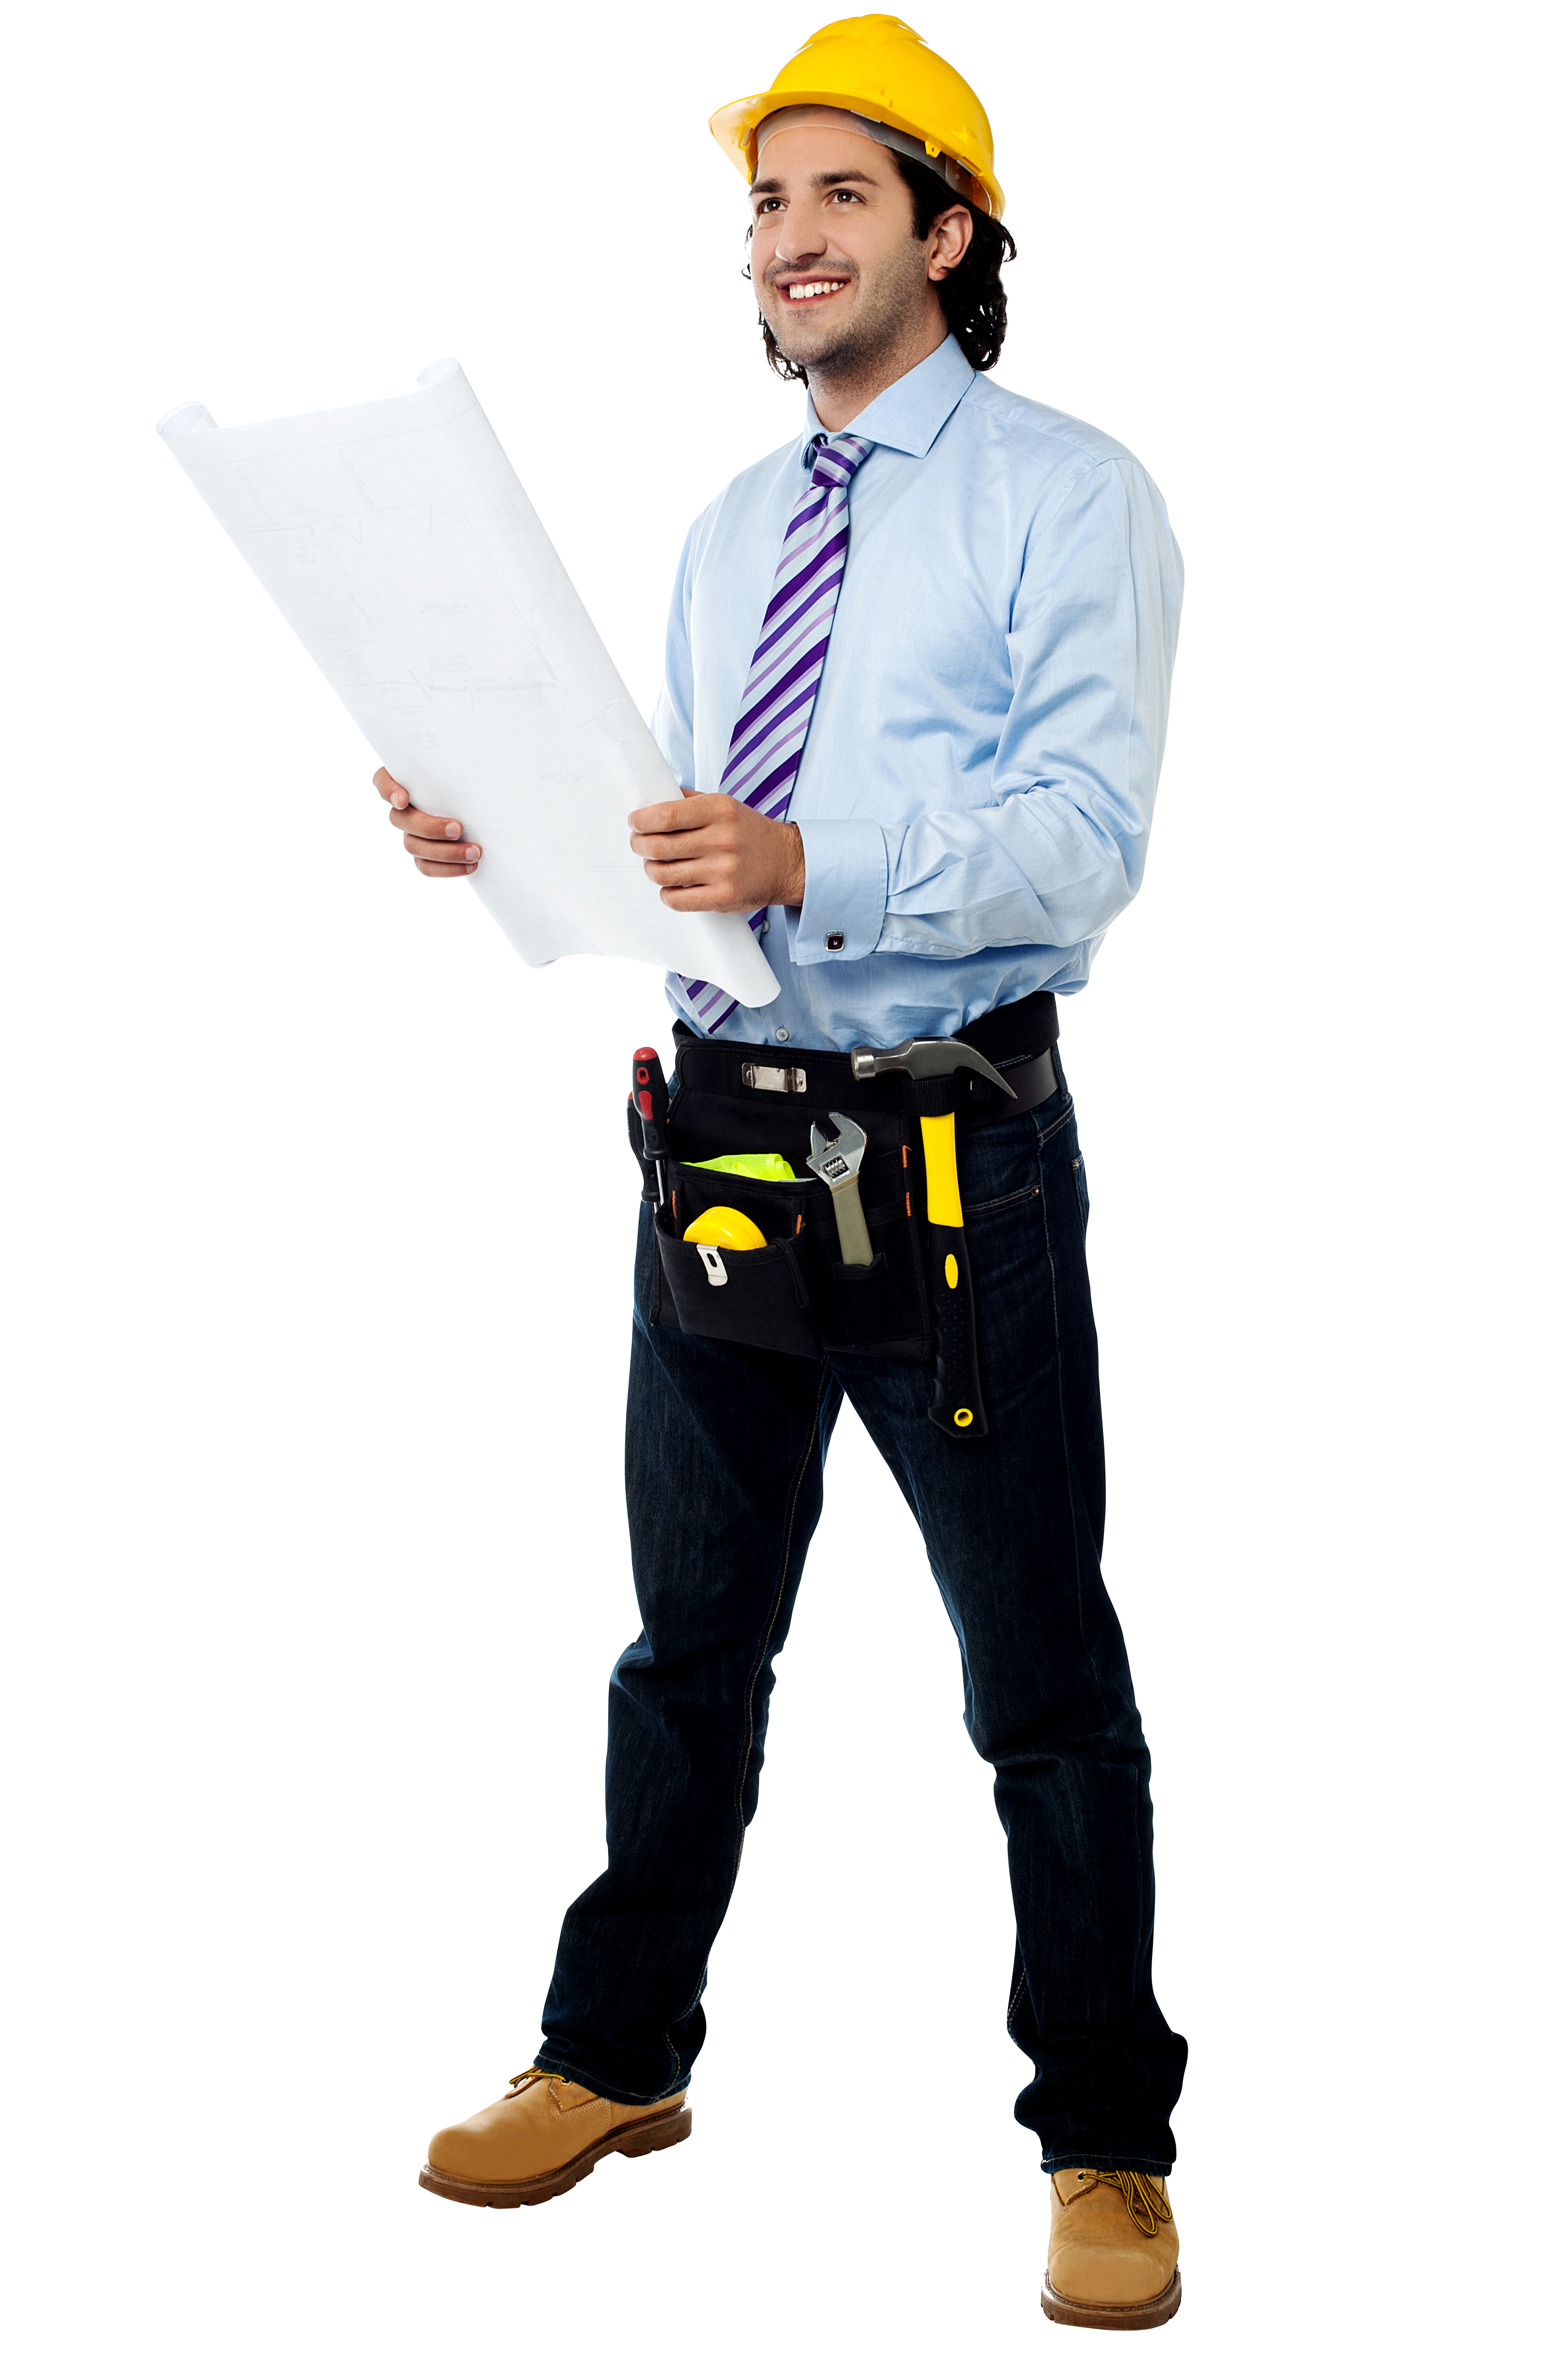 Architects At Work Free Commercial Use PNG Images.